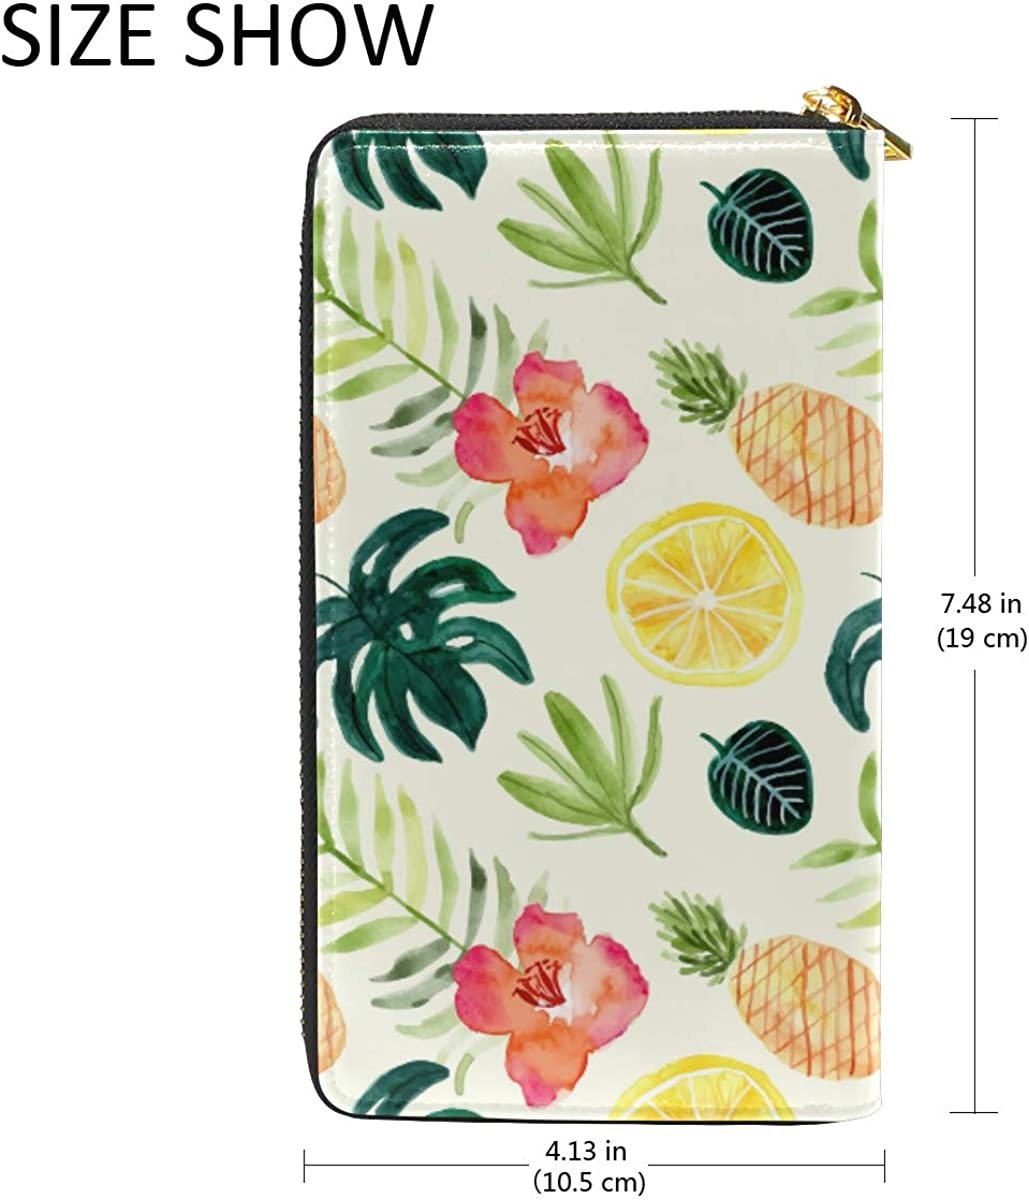 Floral Fruit Tropical Watercolor Wallet Real Leather Zipper Coin Phone Purse Clutch for Women